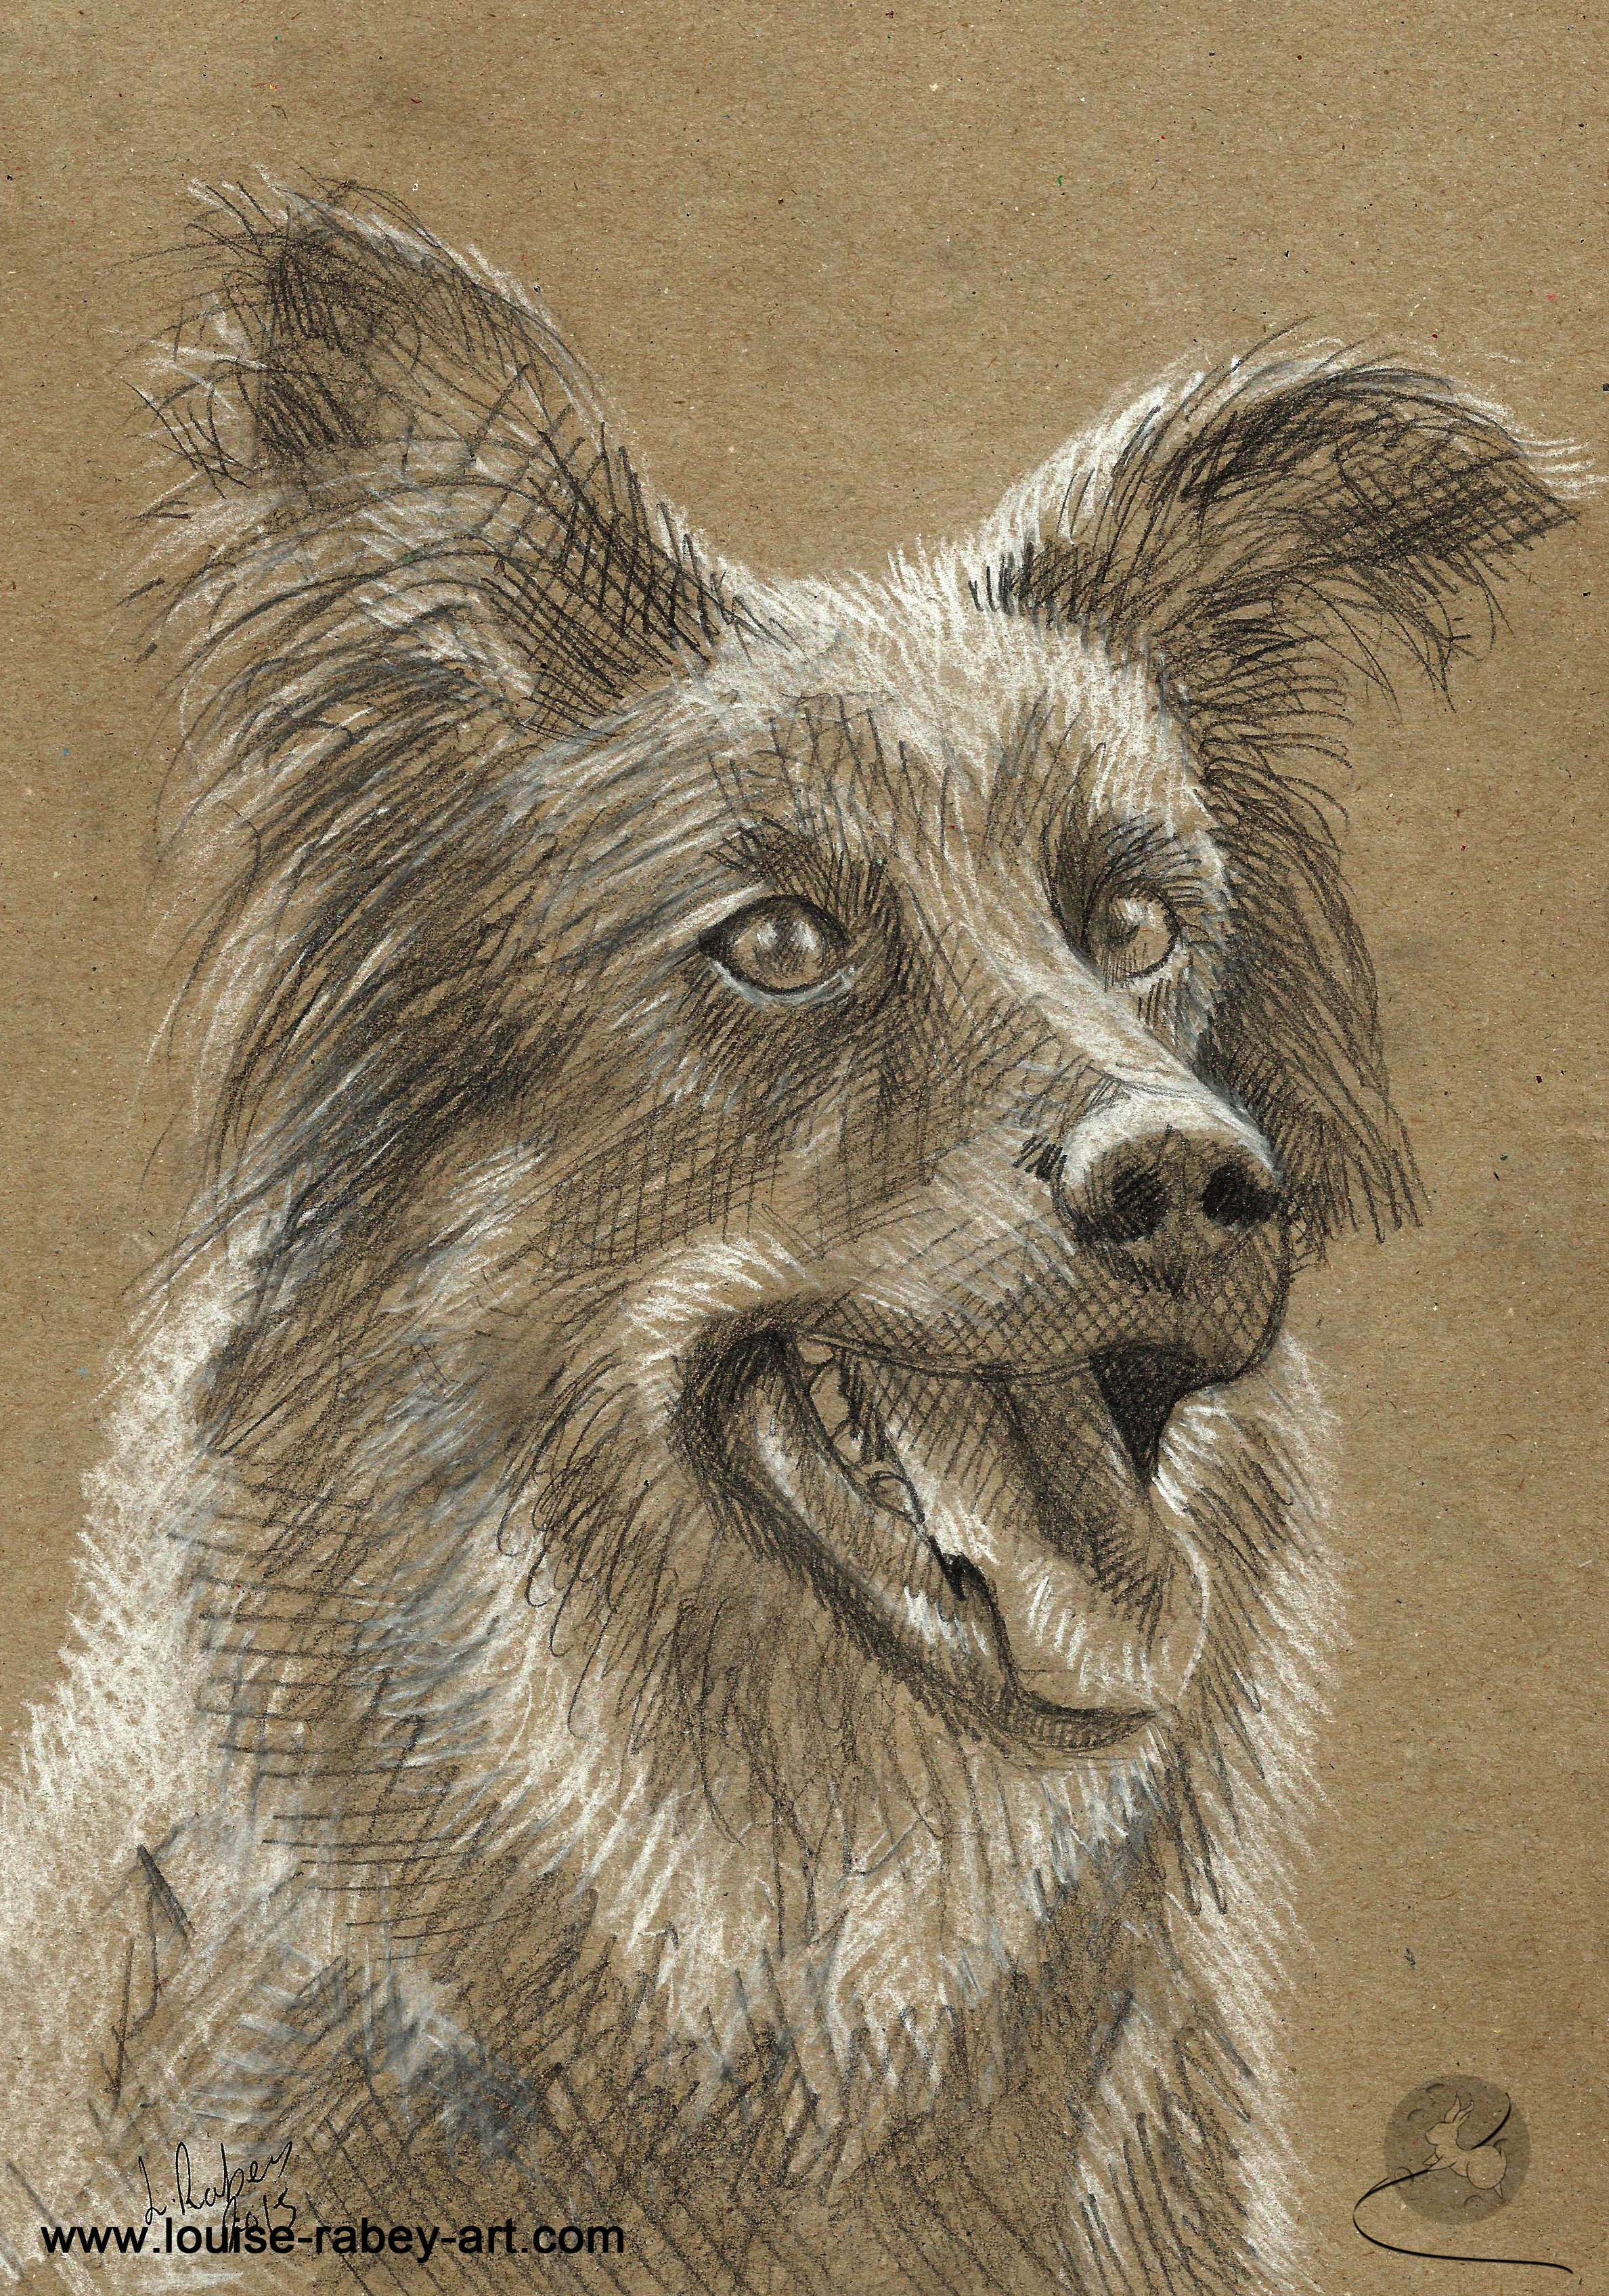 008 Dog sketch portrait.jpg